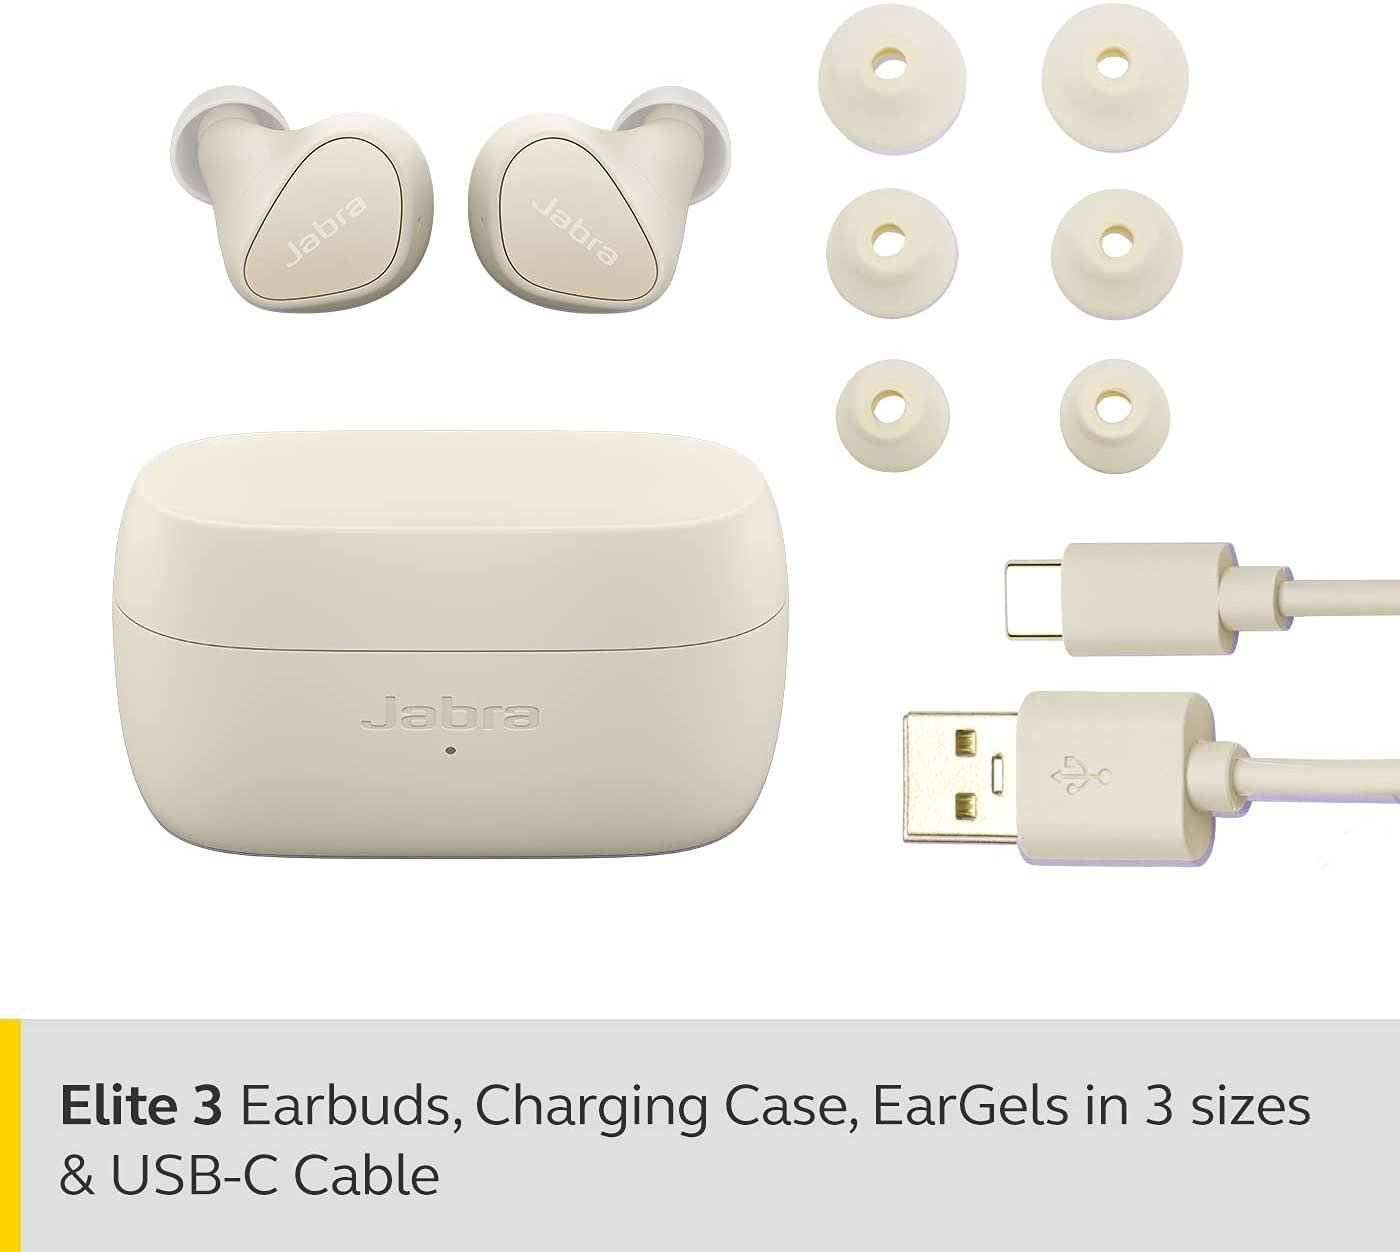 Jabra Elite 3 In Ear Wireless Bluetooth Earbuds – Noise Isolating True Wireless buds with 4 built-in Microphones for Clear Calls, Rich Bass, Customizable Sound, and Mono Mode - Light Beige